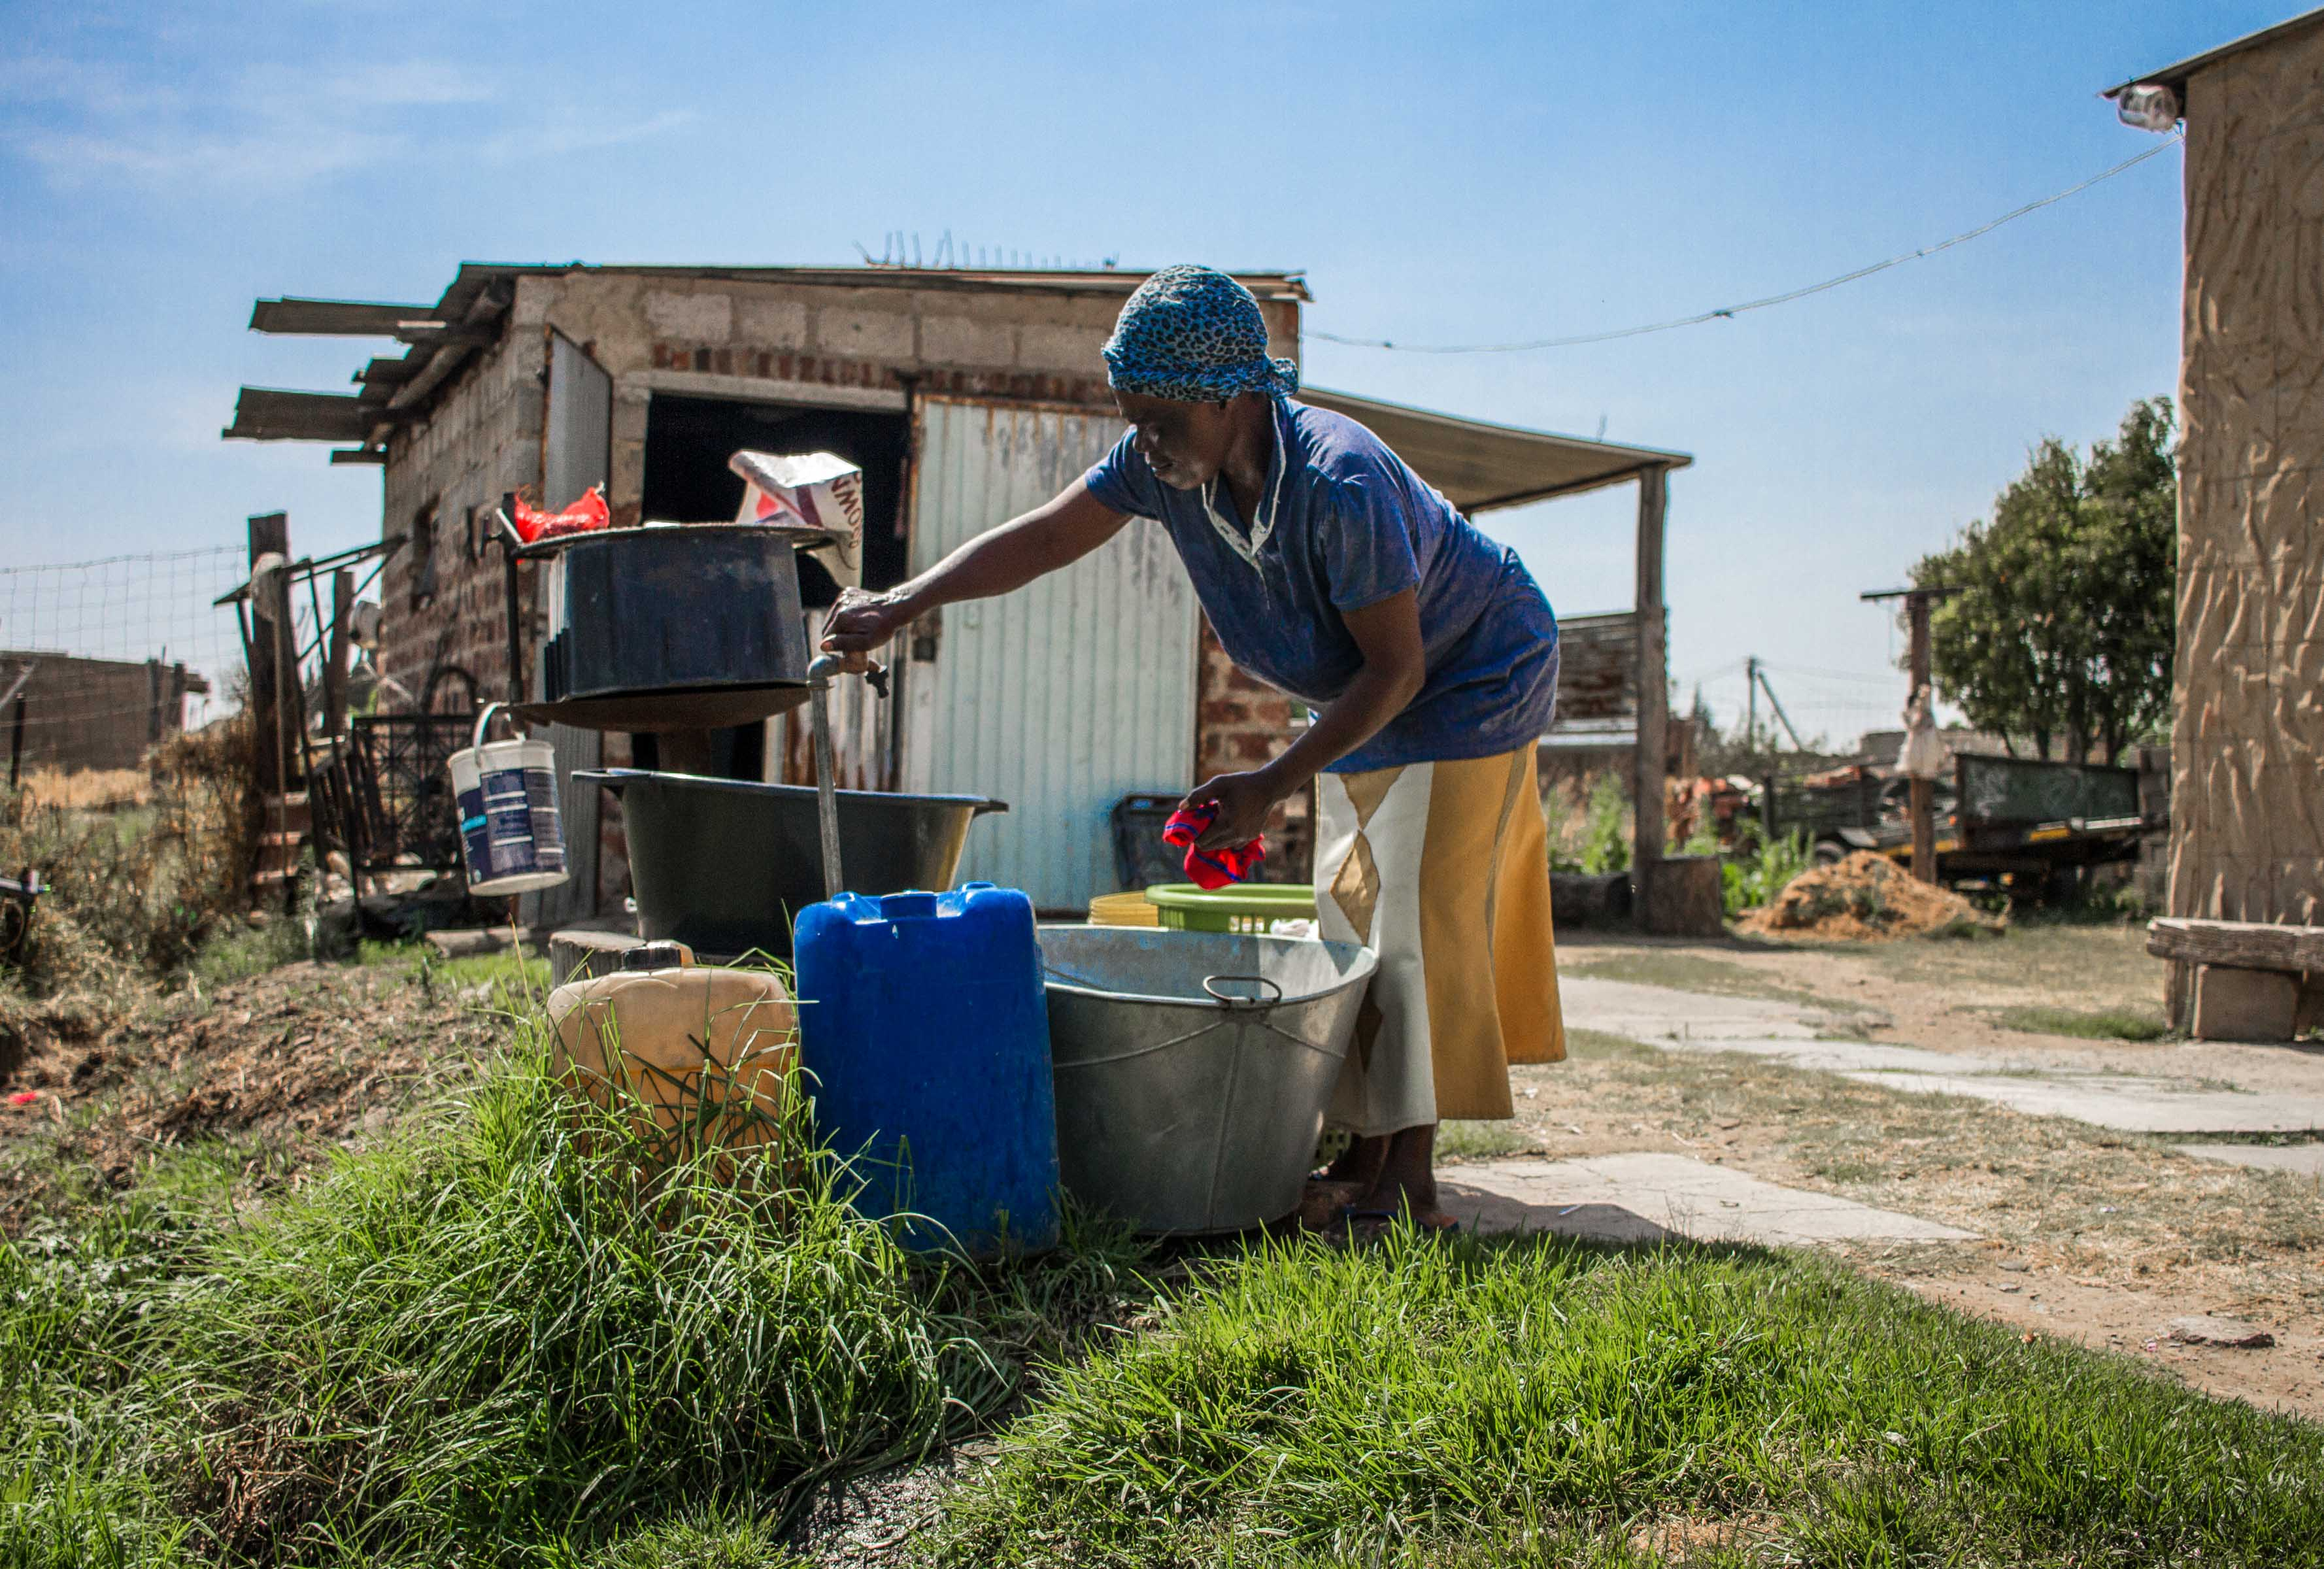 13 September 2019: Pertunia Dlamini from kwaNkomonde in Blaauwbosch near Newcastle fetching water. She feels abandoned by the municipality.